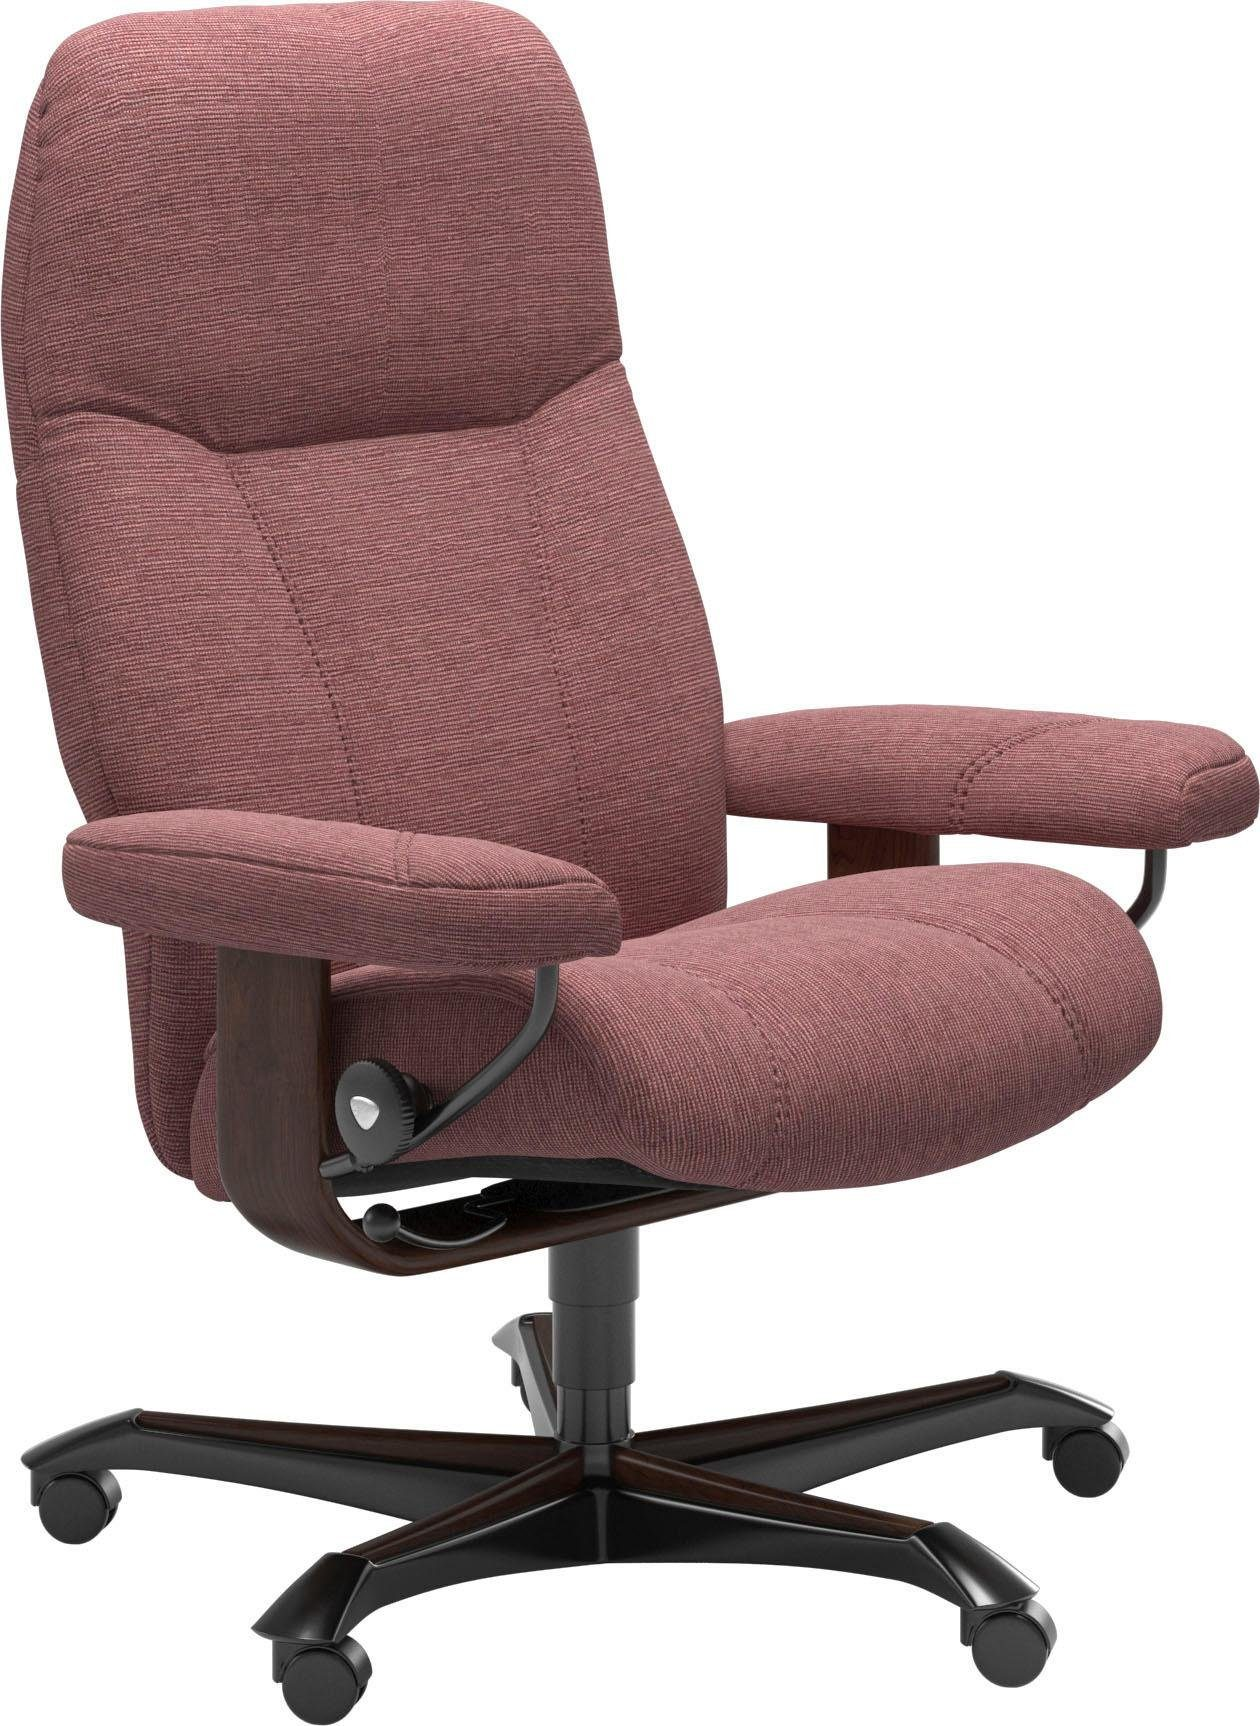 Stressless Relaxsessel Stressless® Relaxsessel »consul«, Mit Home Office Base